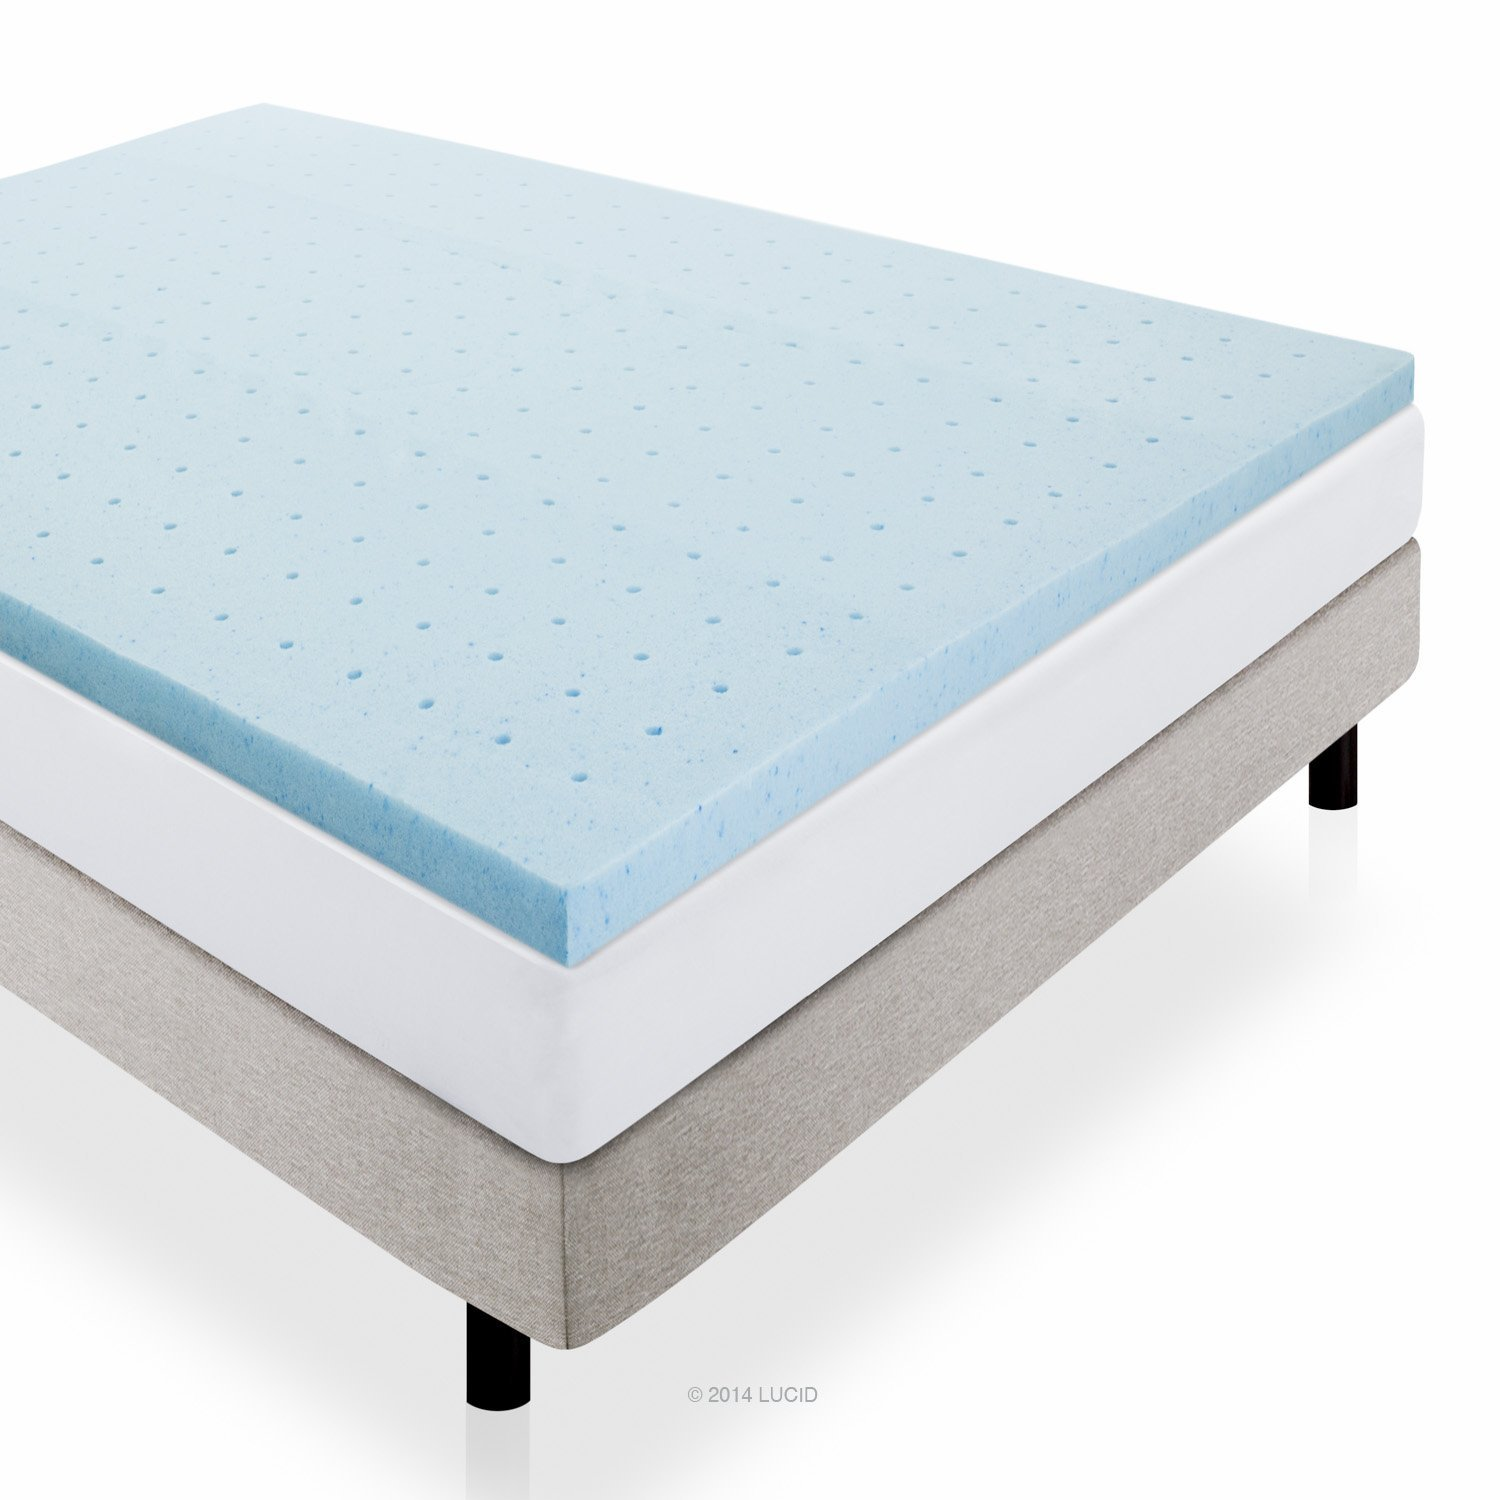 Lucid 2 inch gel infused ventilated memory foam mattress topper review Memory foam mattress buy